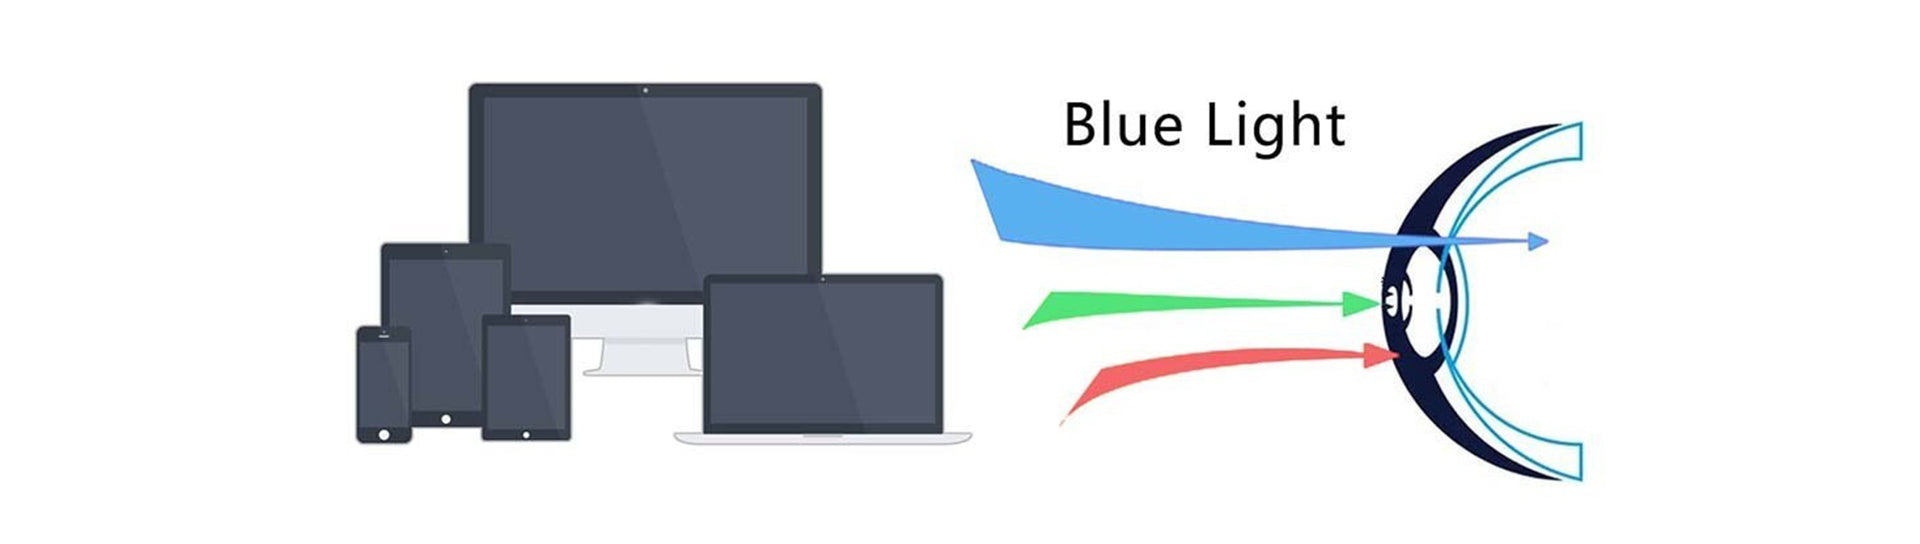 Blue light affects the retina and damages the eyes.